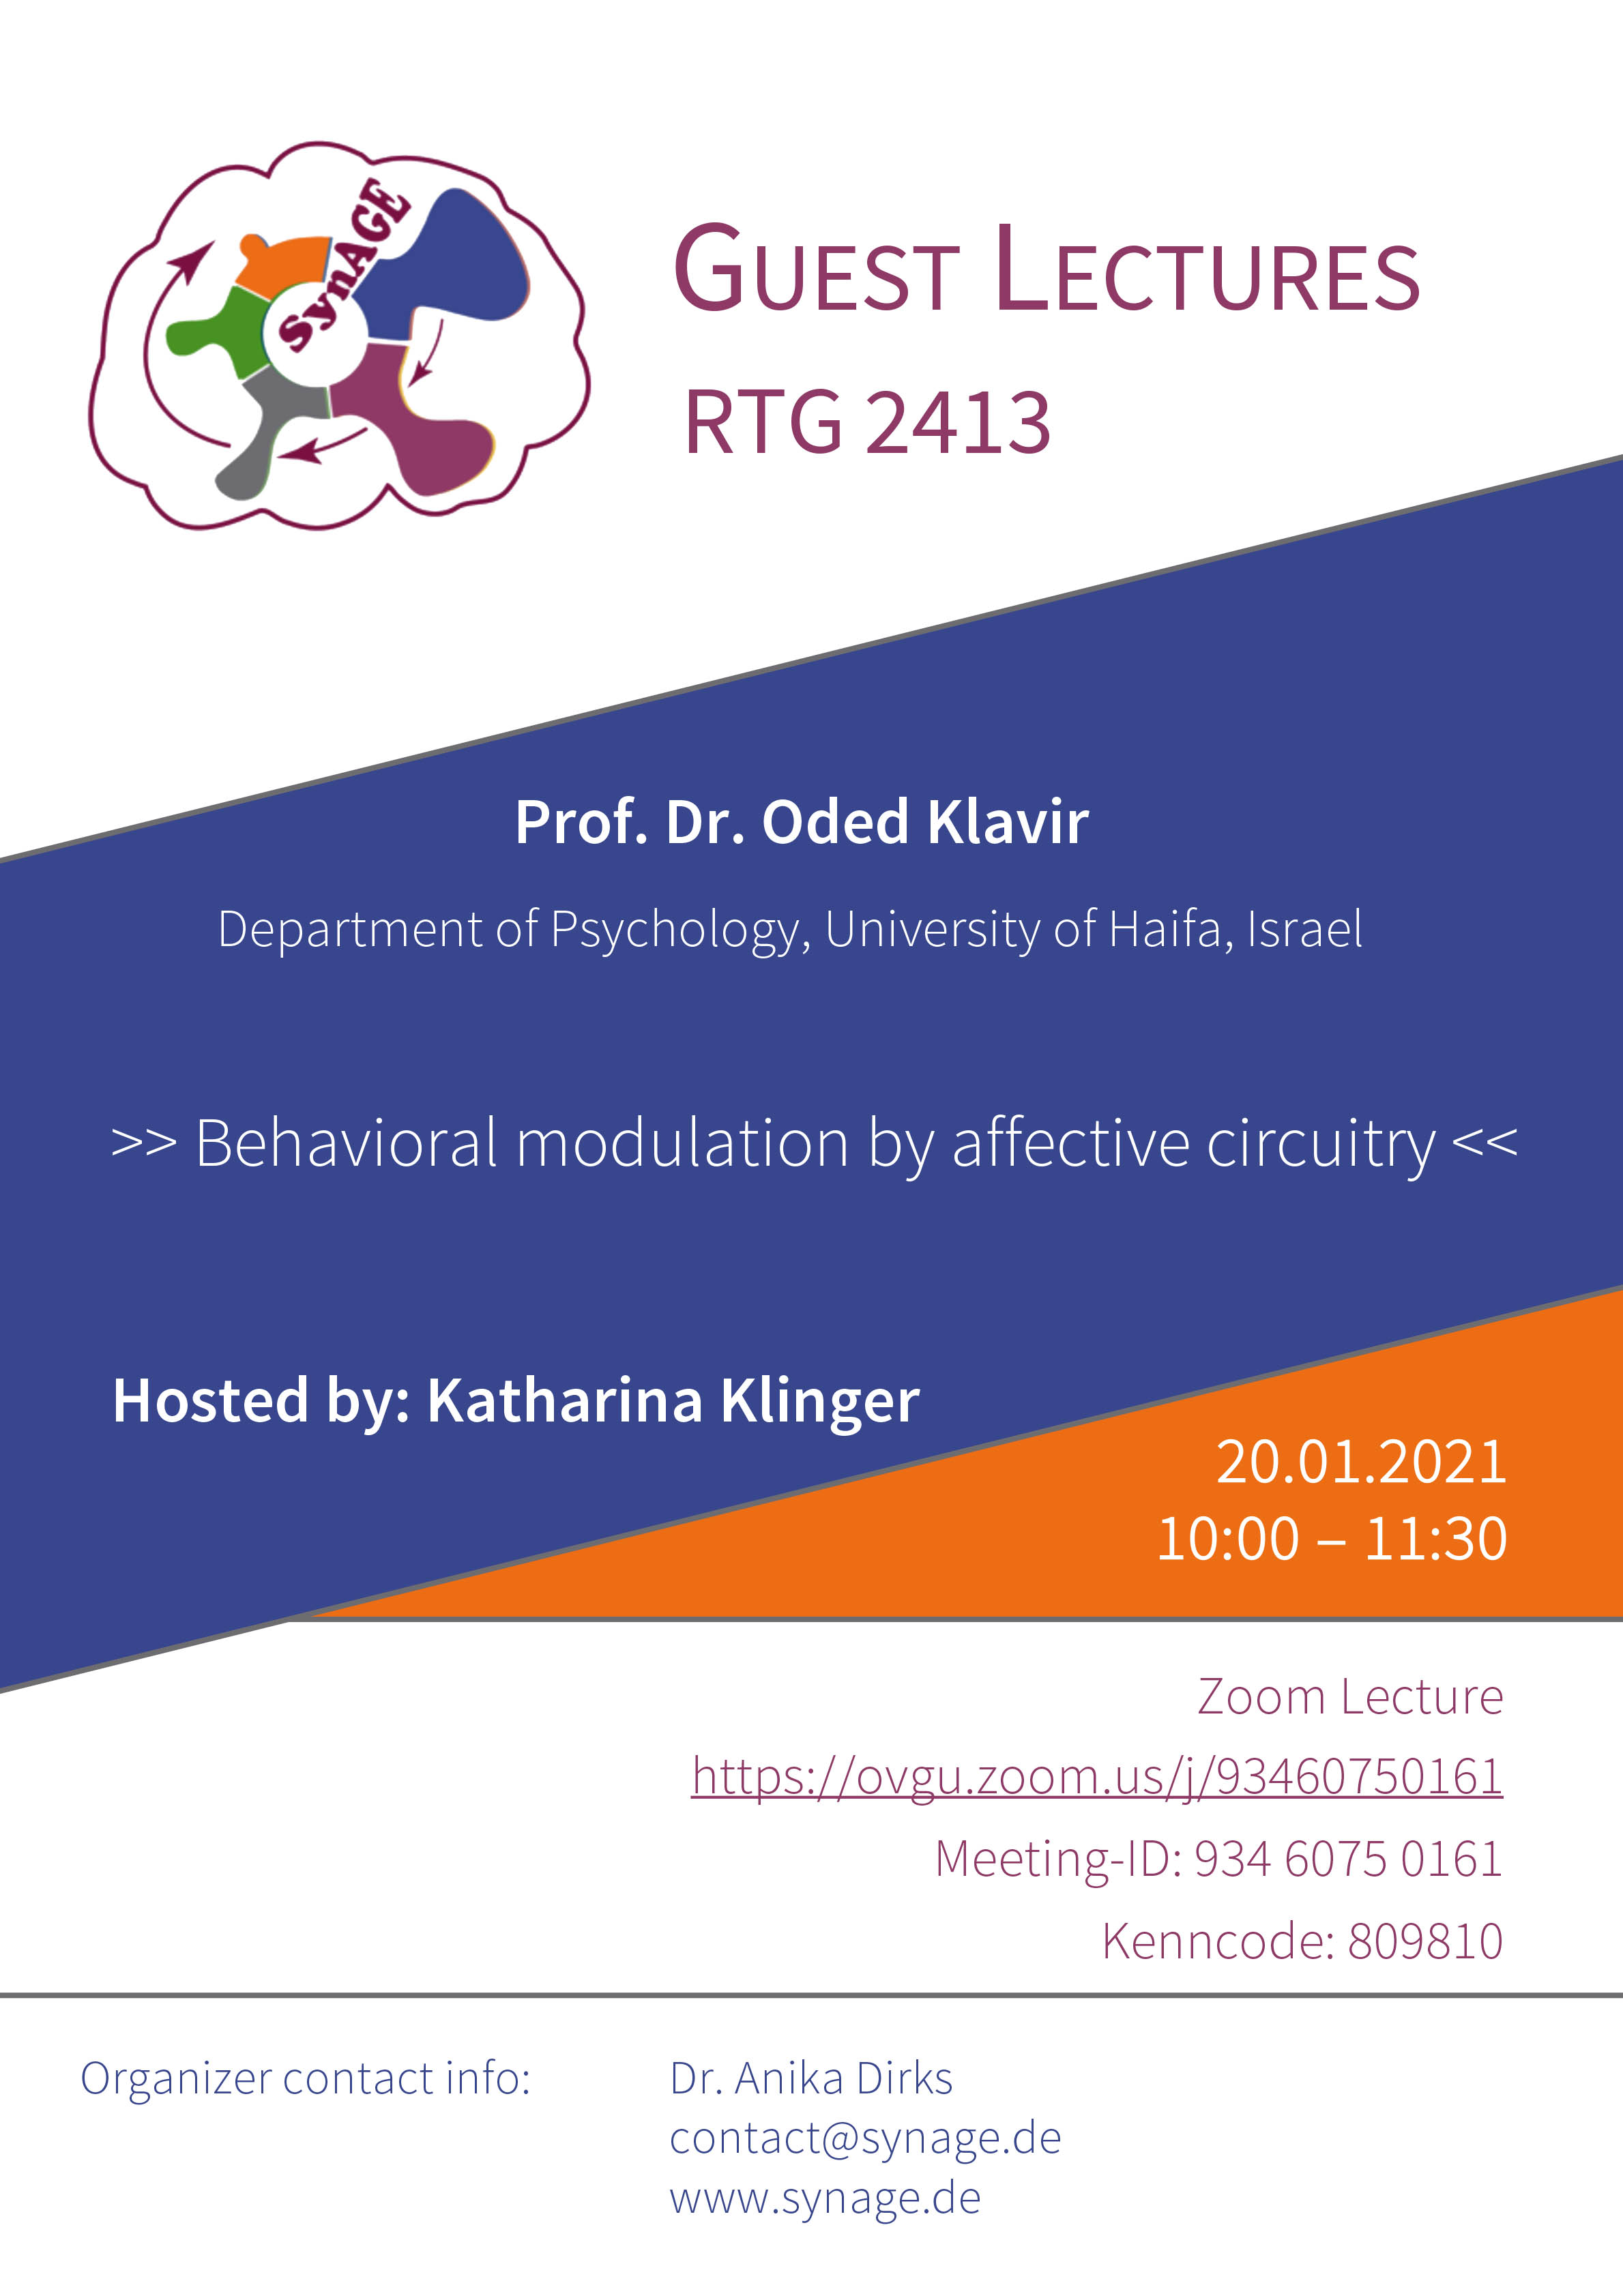 RTG 2413 Guest Lecture: Behavioral modulation by affective circuitry @ Zoom